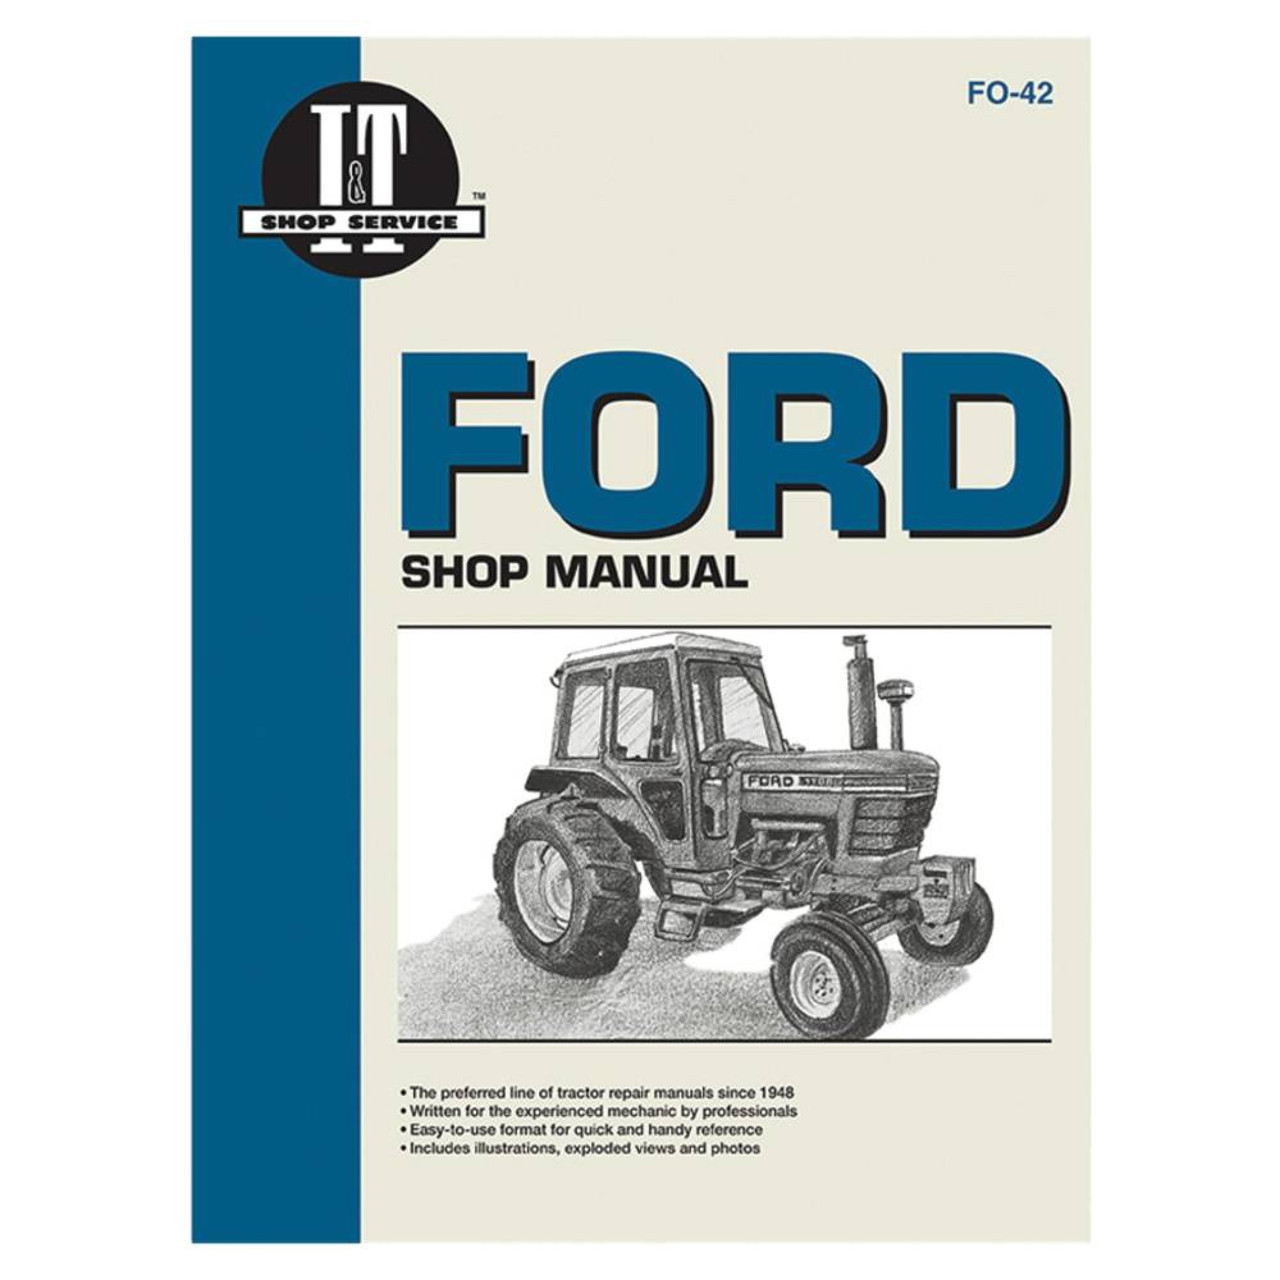 5610 Ford Tractor Wiring Harness | Wiring Diagram New Holland Tractor Wiring Diagrams on